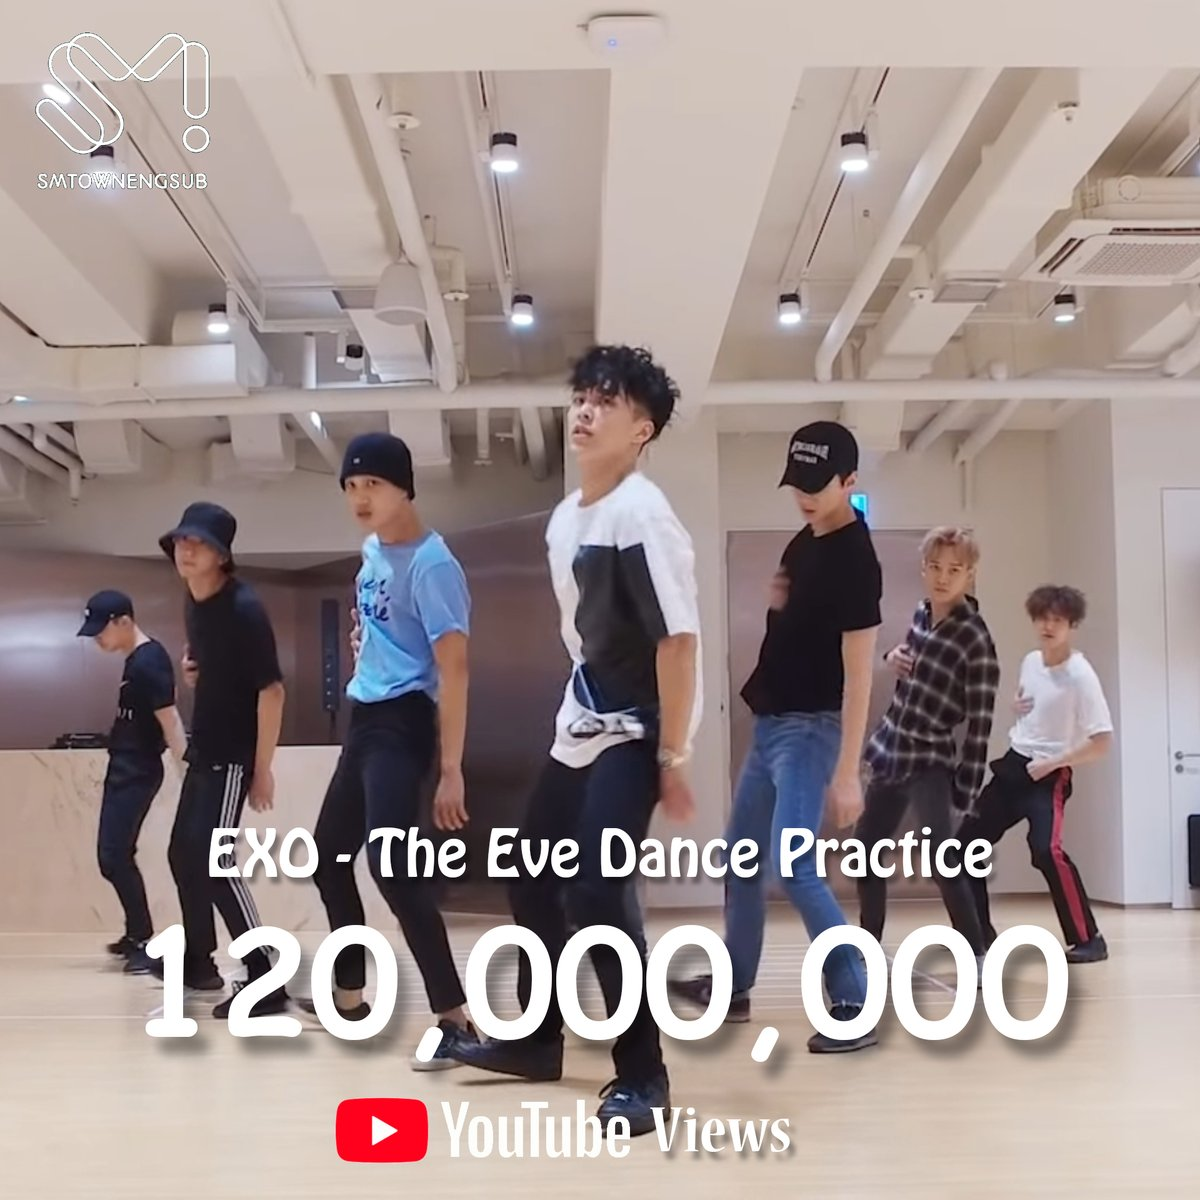 ".@weareoneEXO ""The Eve"" becomes the 1st SM dance practice video to hit 120,000,000 views on YouTube"